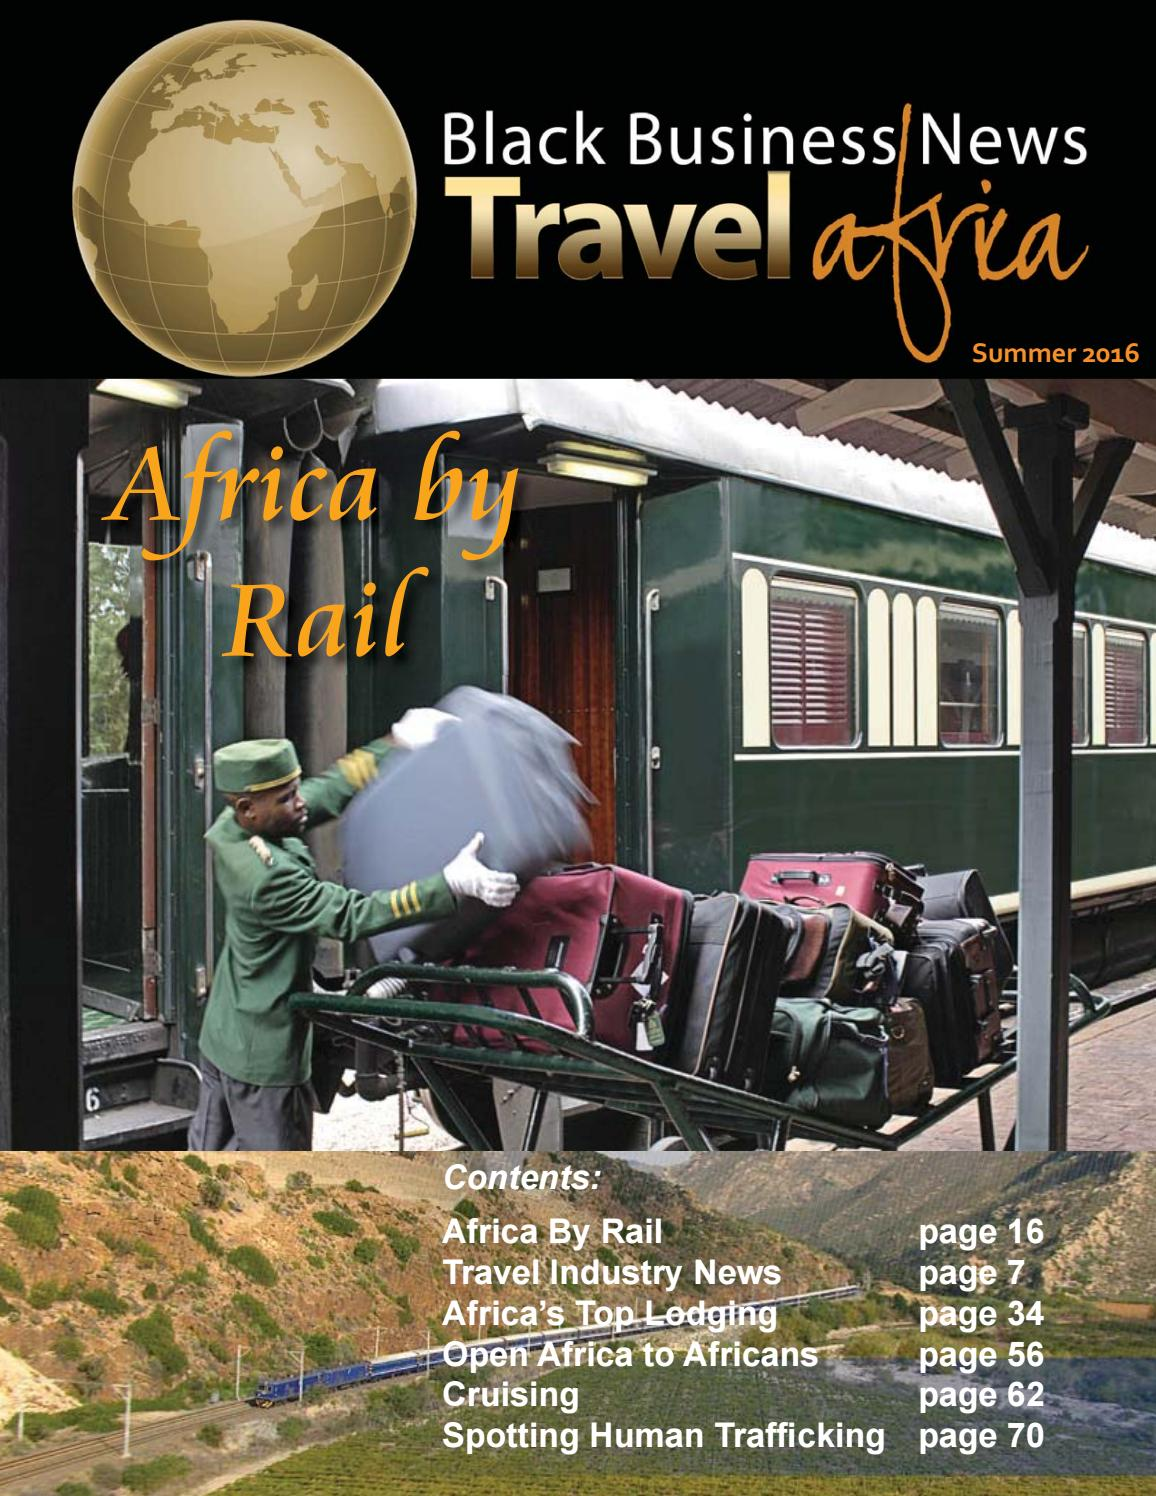 bbn travel africa summer 2016 by black business news group issuu